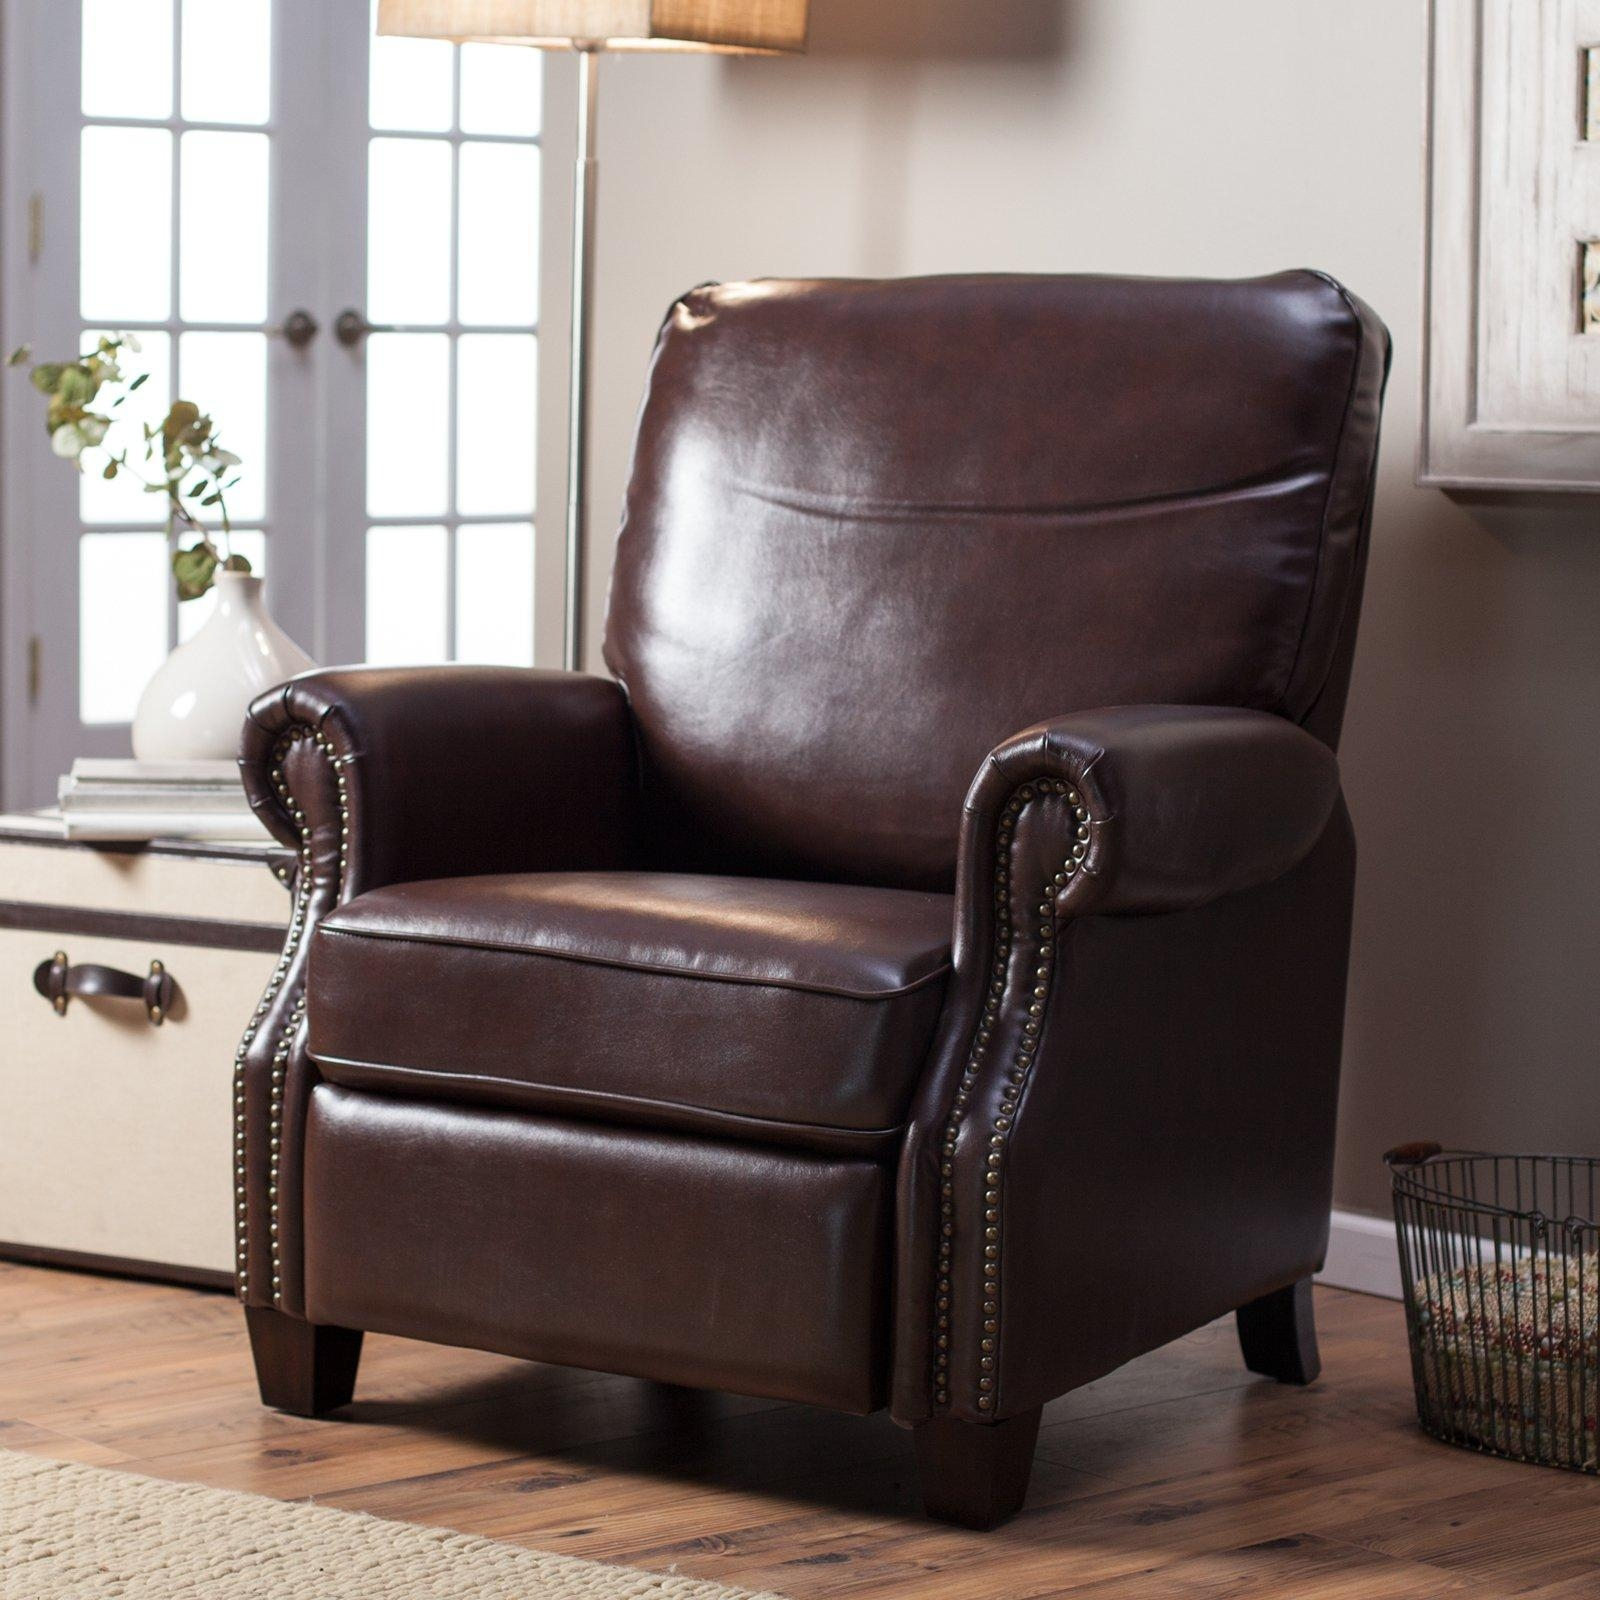 Abbyson Living Lorraine Leather Pushback Recliner | Hayneedle Pertaining To Abbyson Recliners (View 8 of 20)